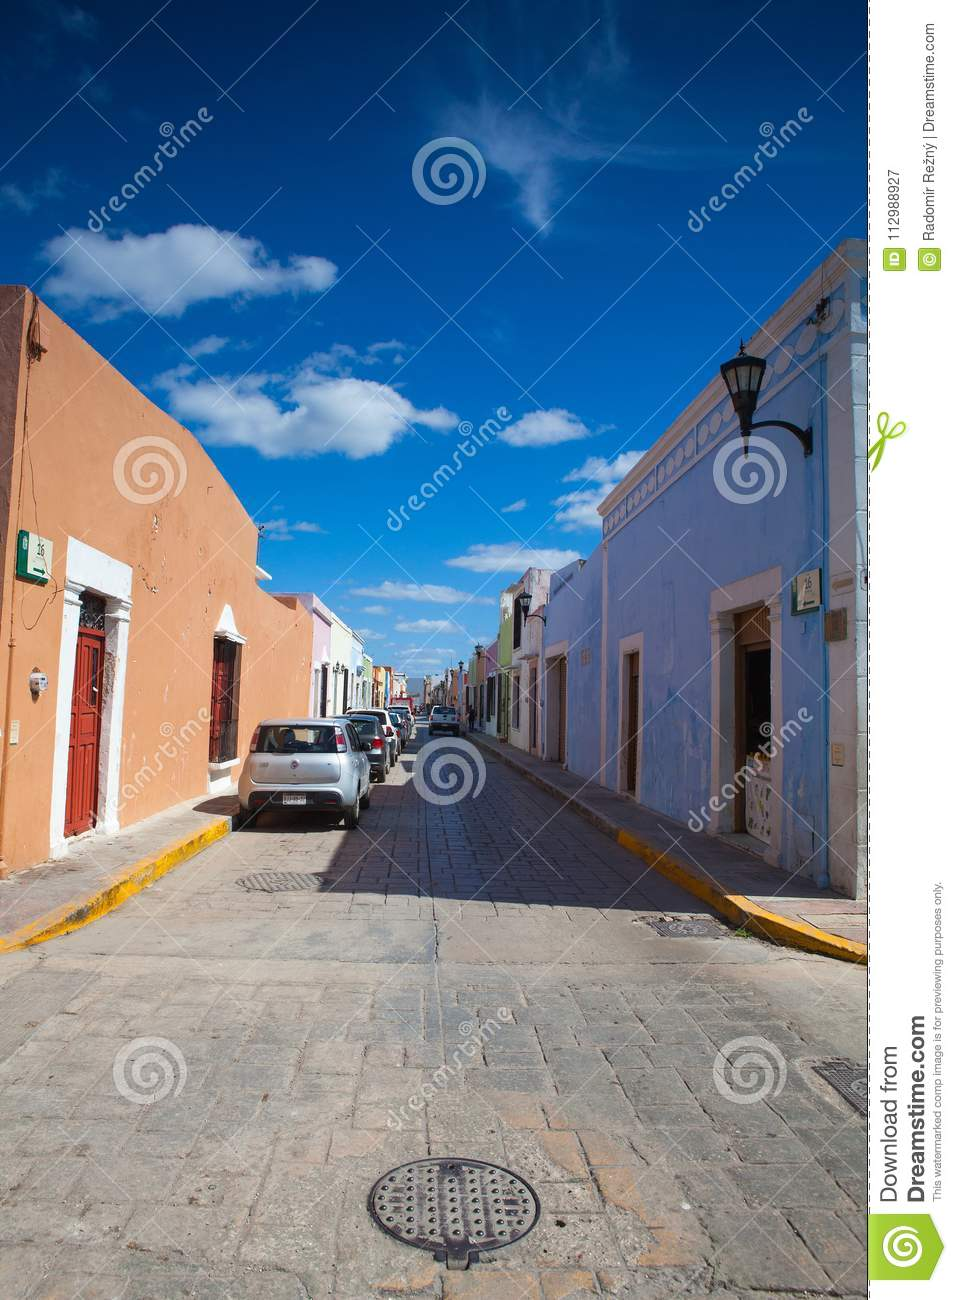 Typical colonial street in Campeche, Mexico.